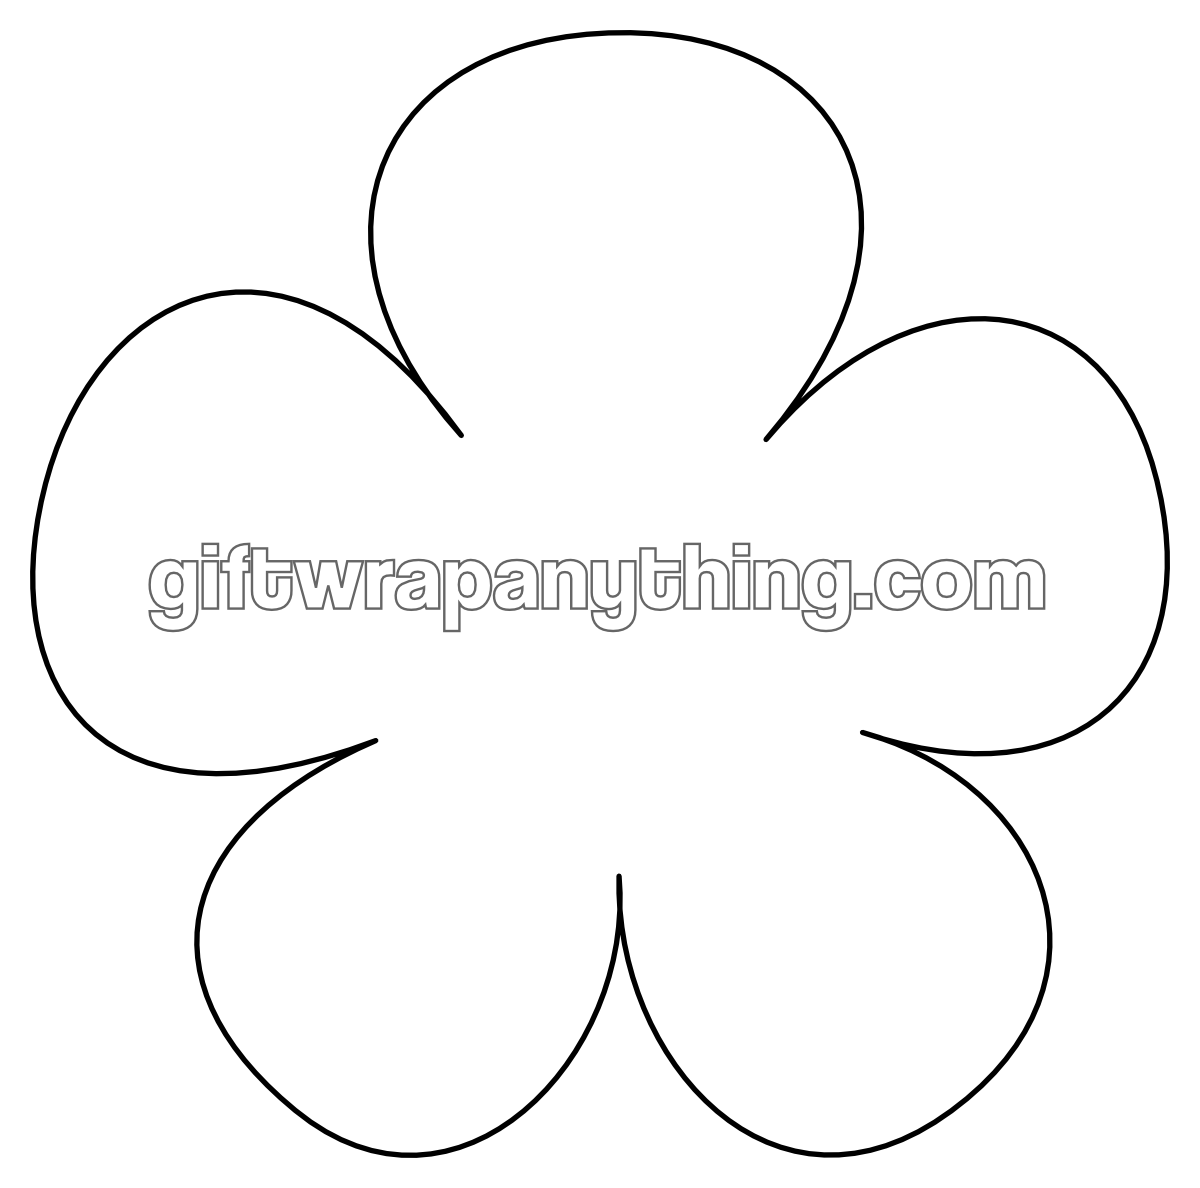 Diy kids sewing flower for spring stenciling crafty and patterns diy kids sewing flower for spring jeuxipadfo Choice Image